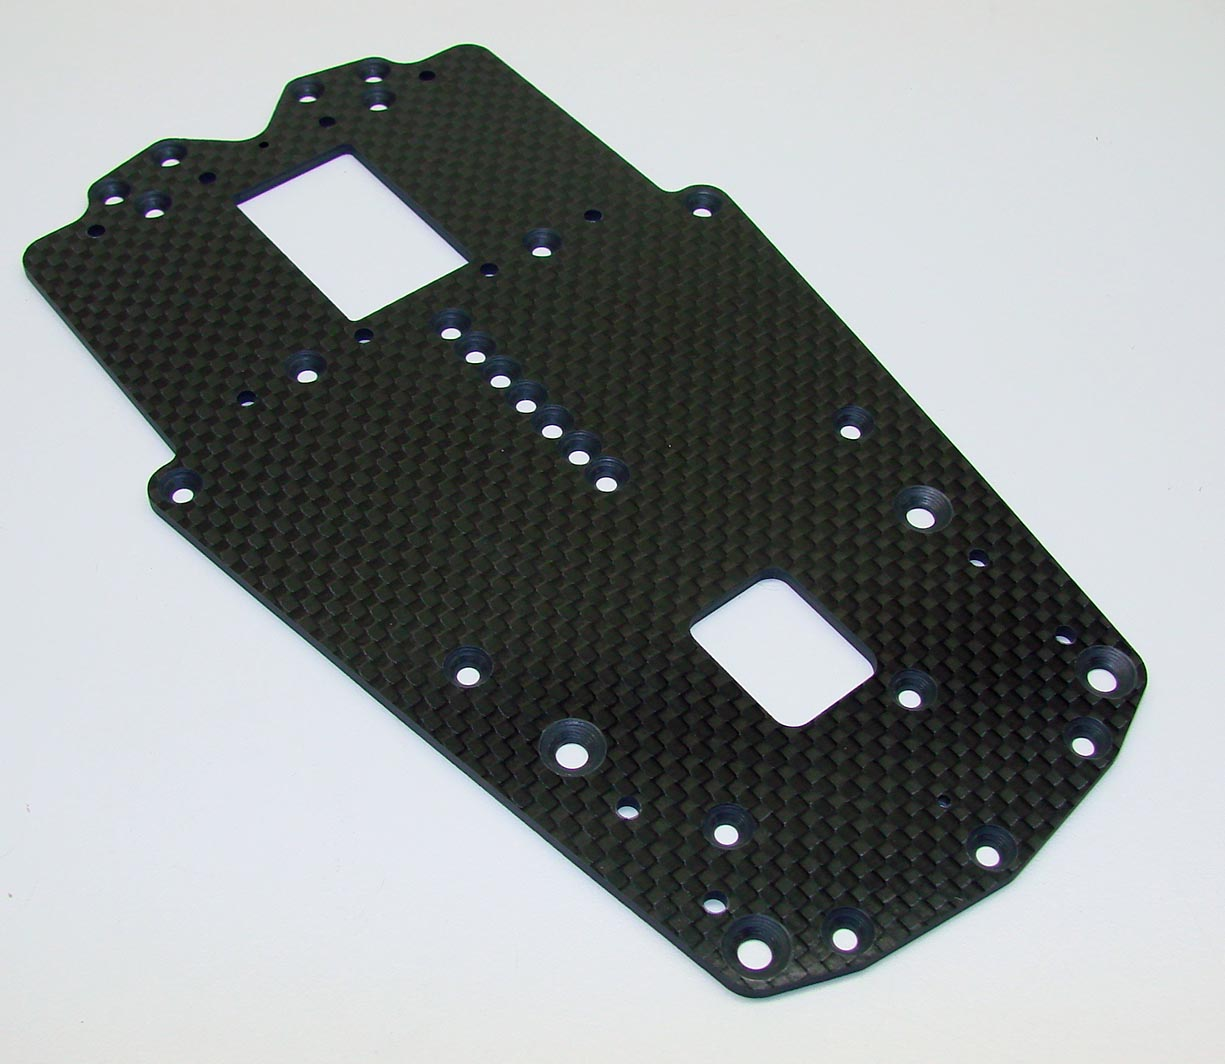 2.5mm Z-Flex Chassis CK25